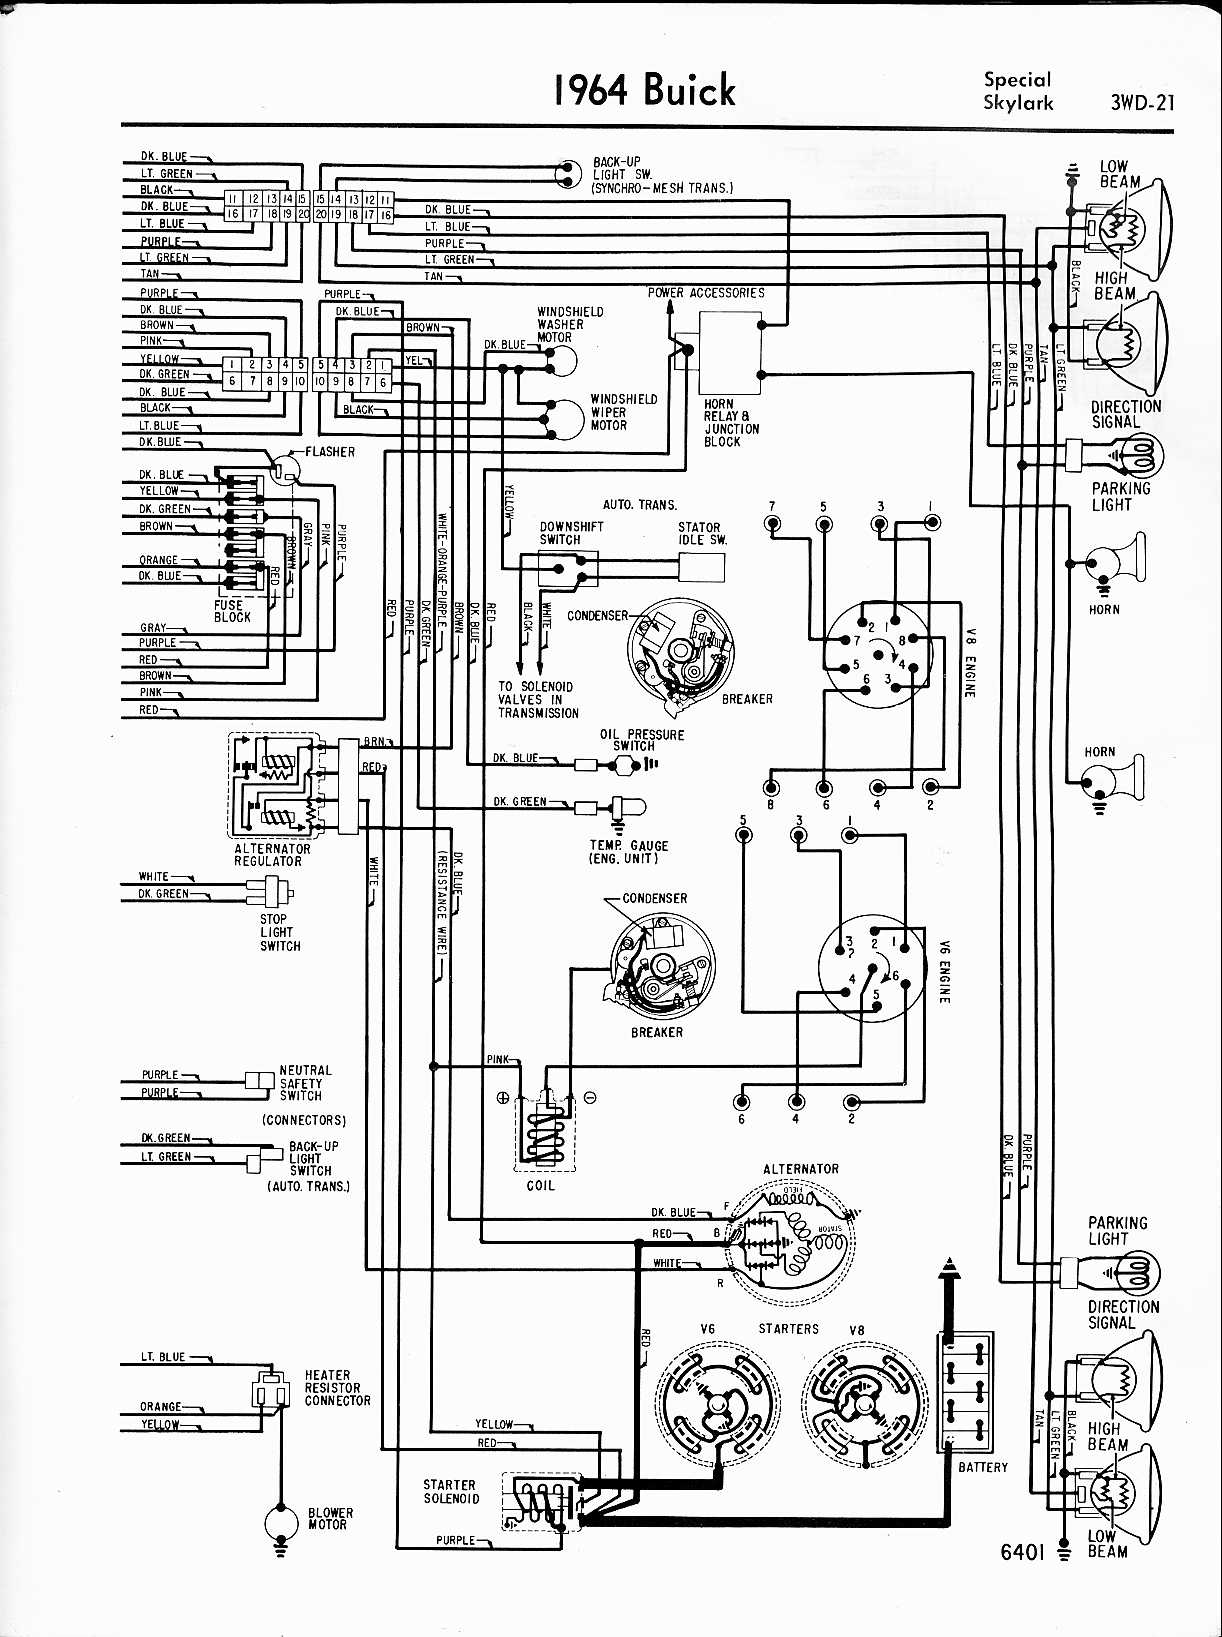 wiring diagram of 1964 buick riviera